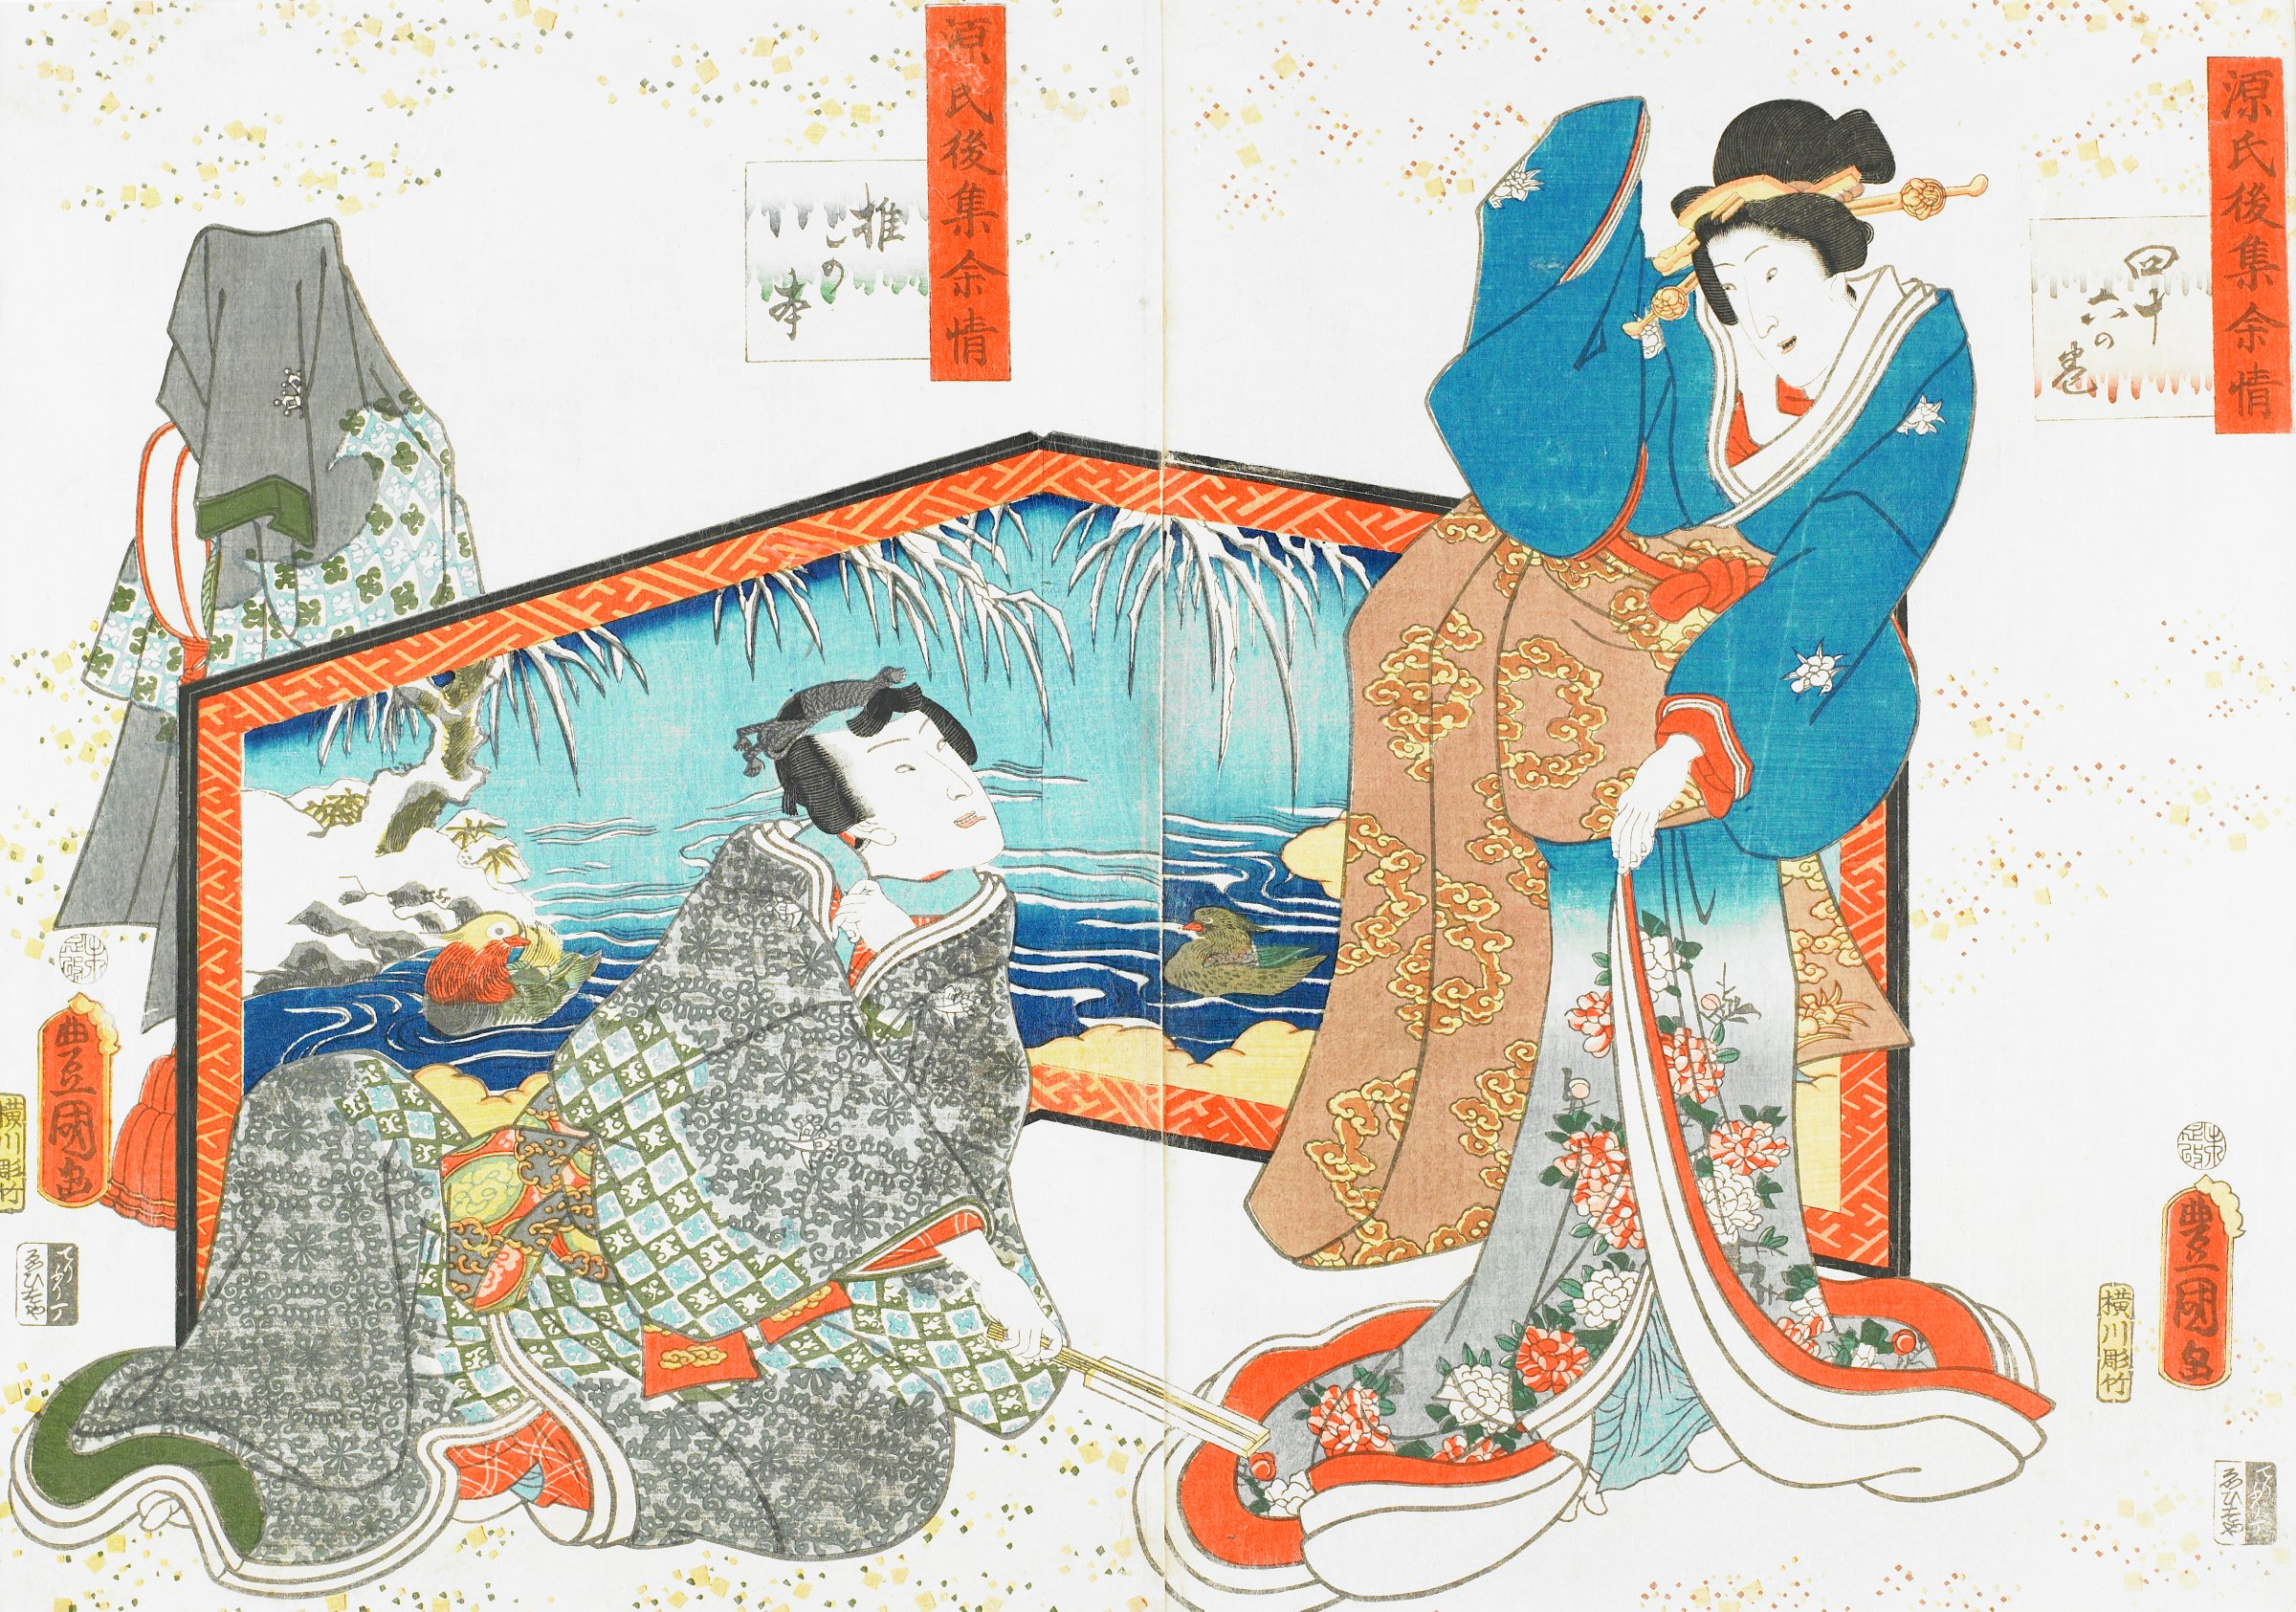 Chapter 46 Beneath the Oak, from the series Lingering Sentiments of a Late Collection of Genji, Utagawa Kunisada, Published by Ebisuya Terifuricho, ink and color on paper, diptych